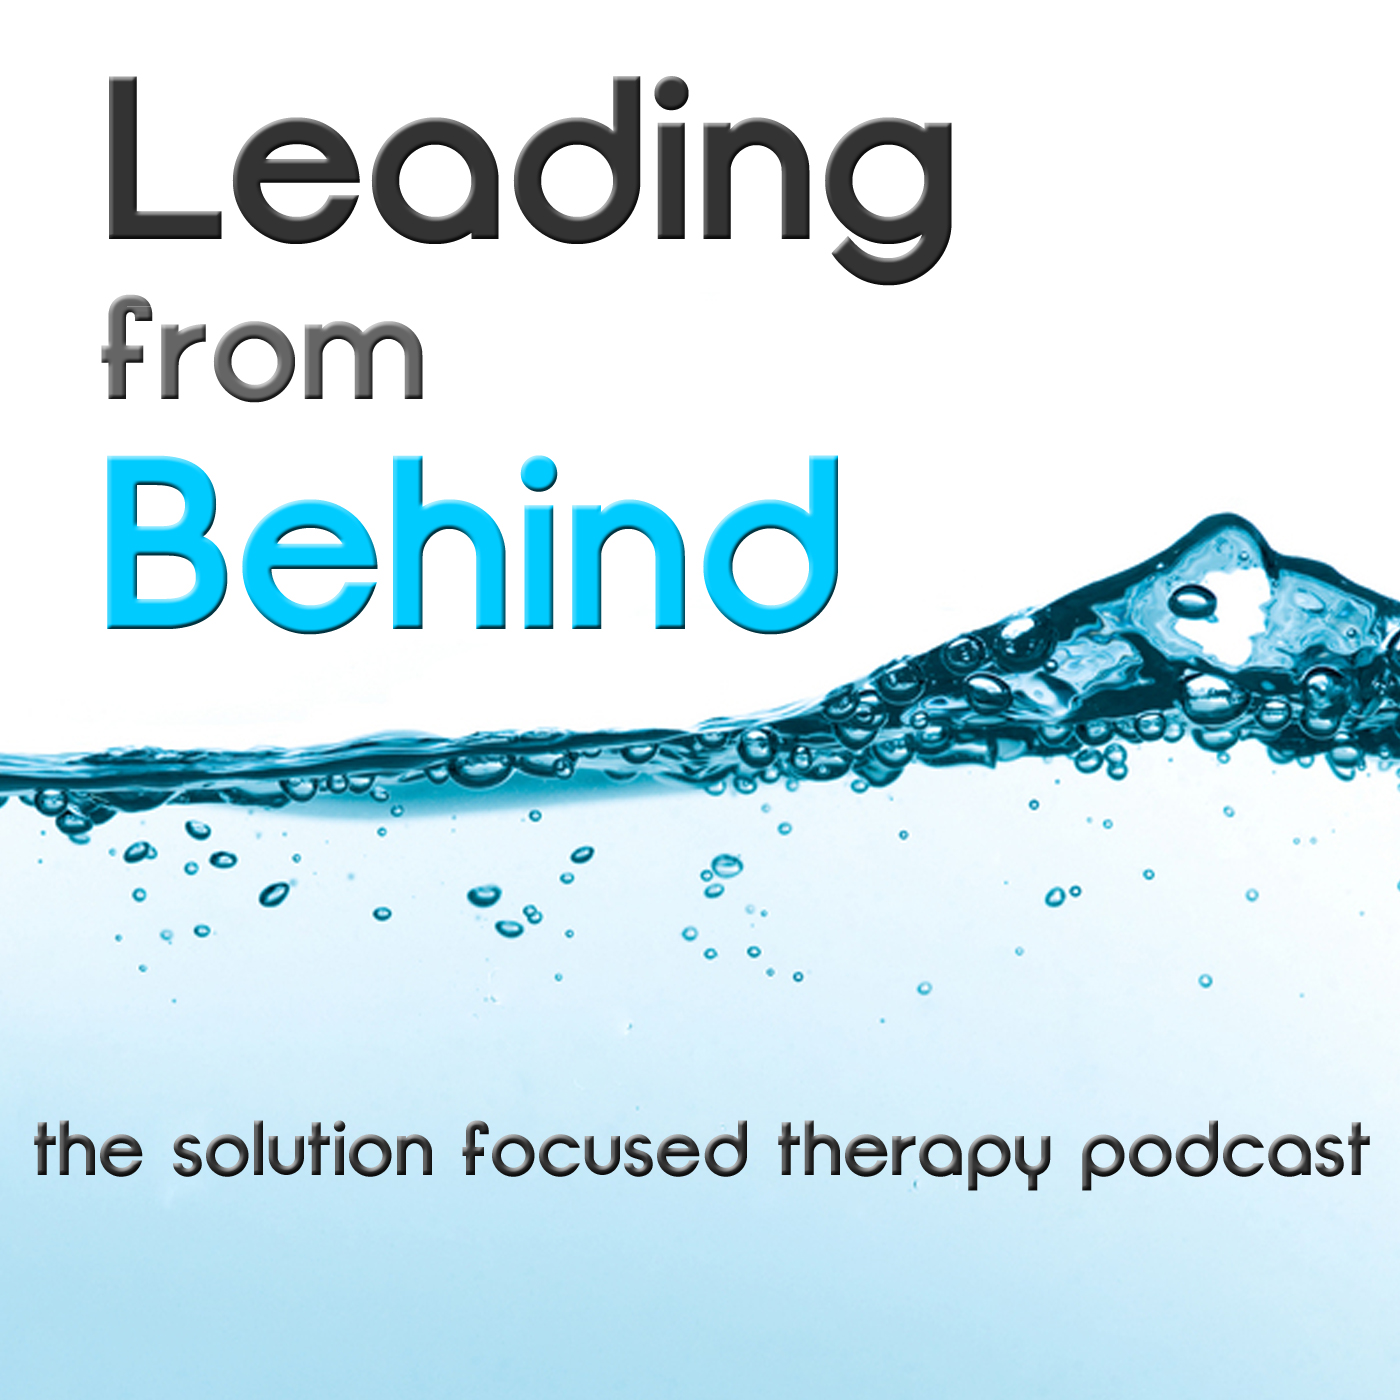 Leading From Behind:  Episode 21 - Working With Mandated Clients